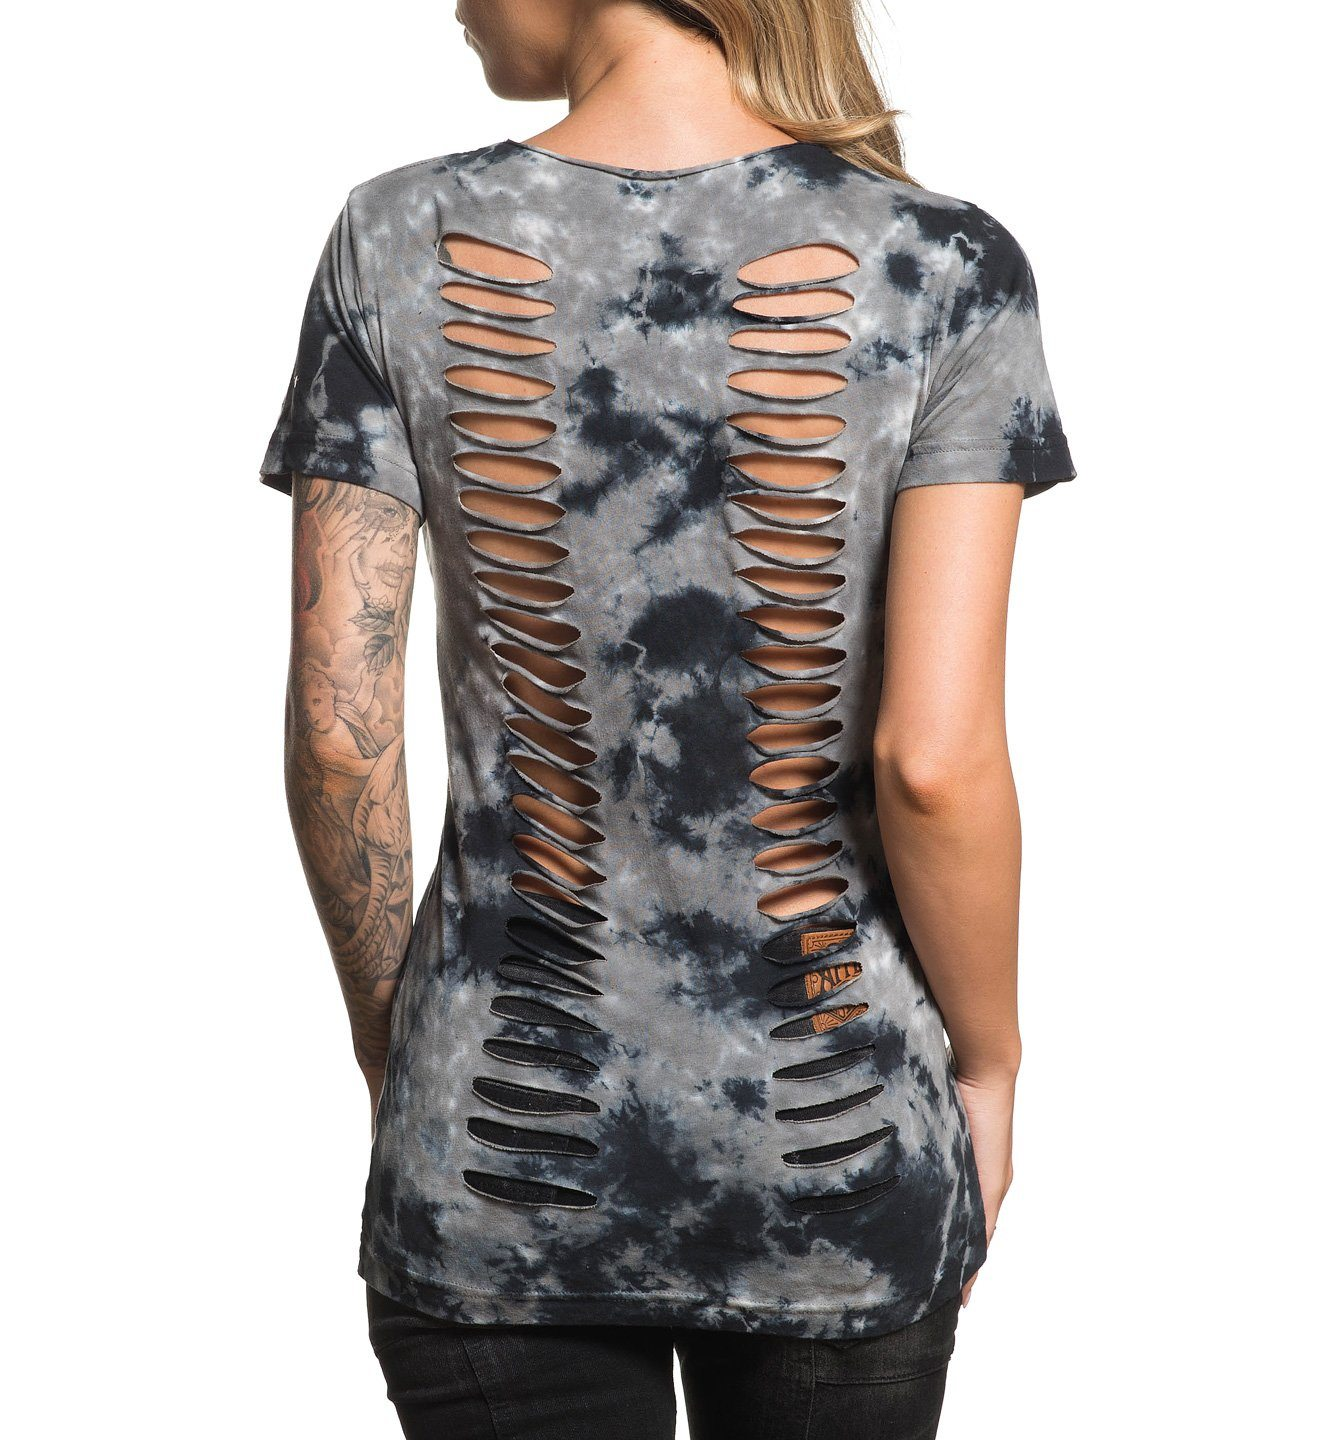 Libby - Womens Short Sleeve Tees - Affliction Clothing